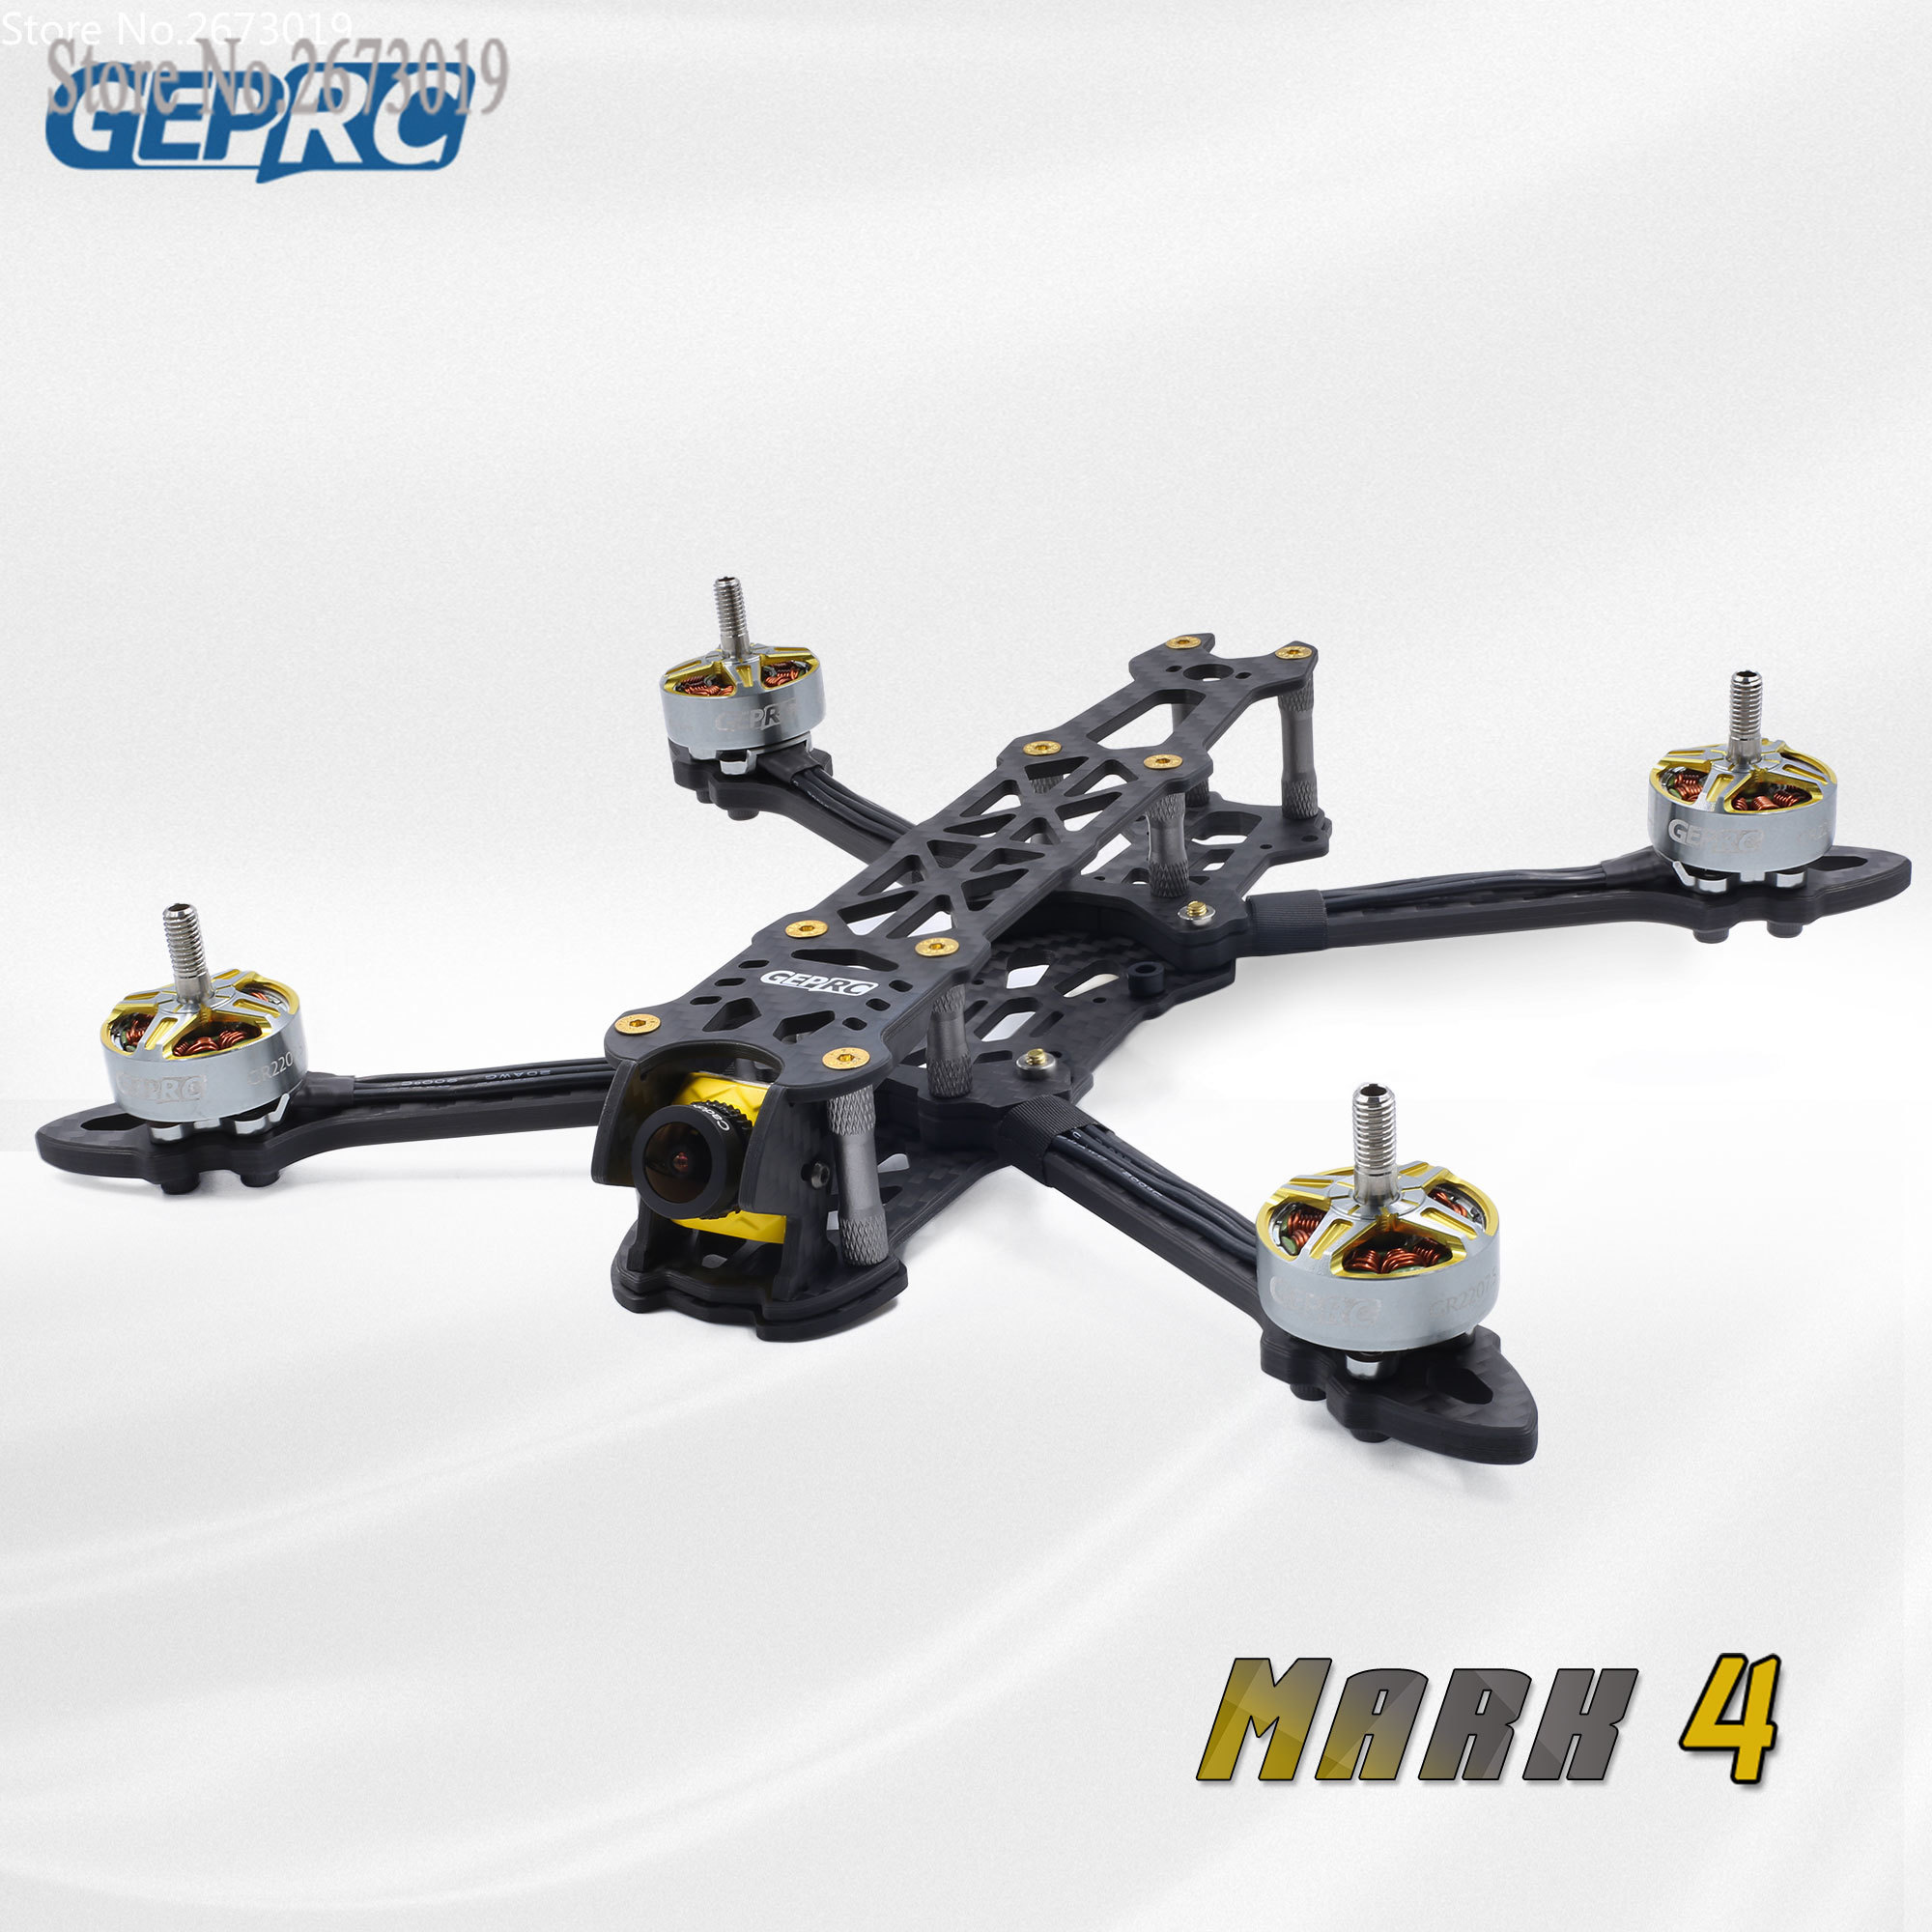 GEPRC Mark 4 FPV Racing Drone Frame Kit 5''/6''/7'' Qudcopter Frame 5mm Arm with 30.5*30.5/20*20mm mounting holes for FC